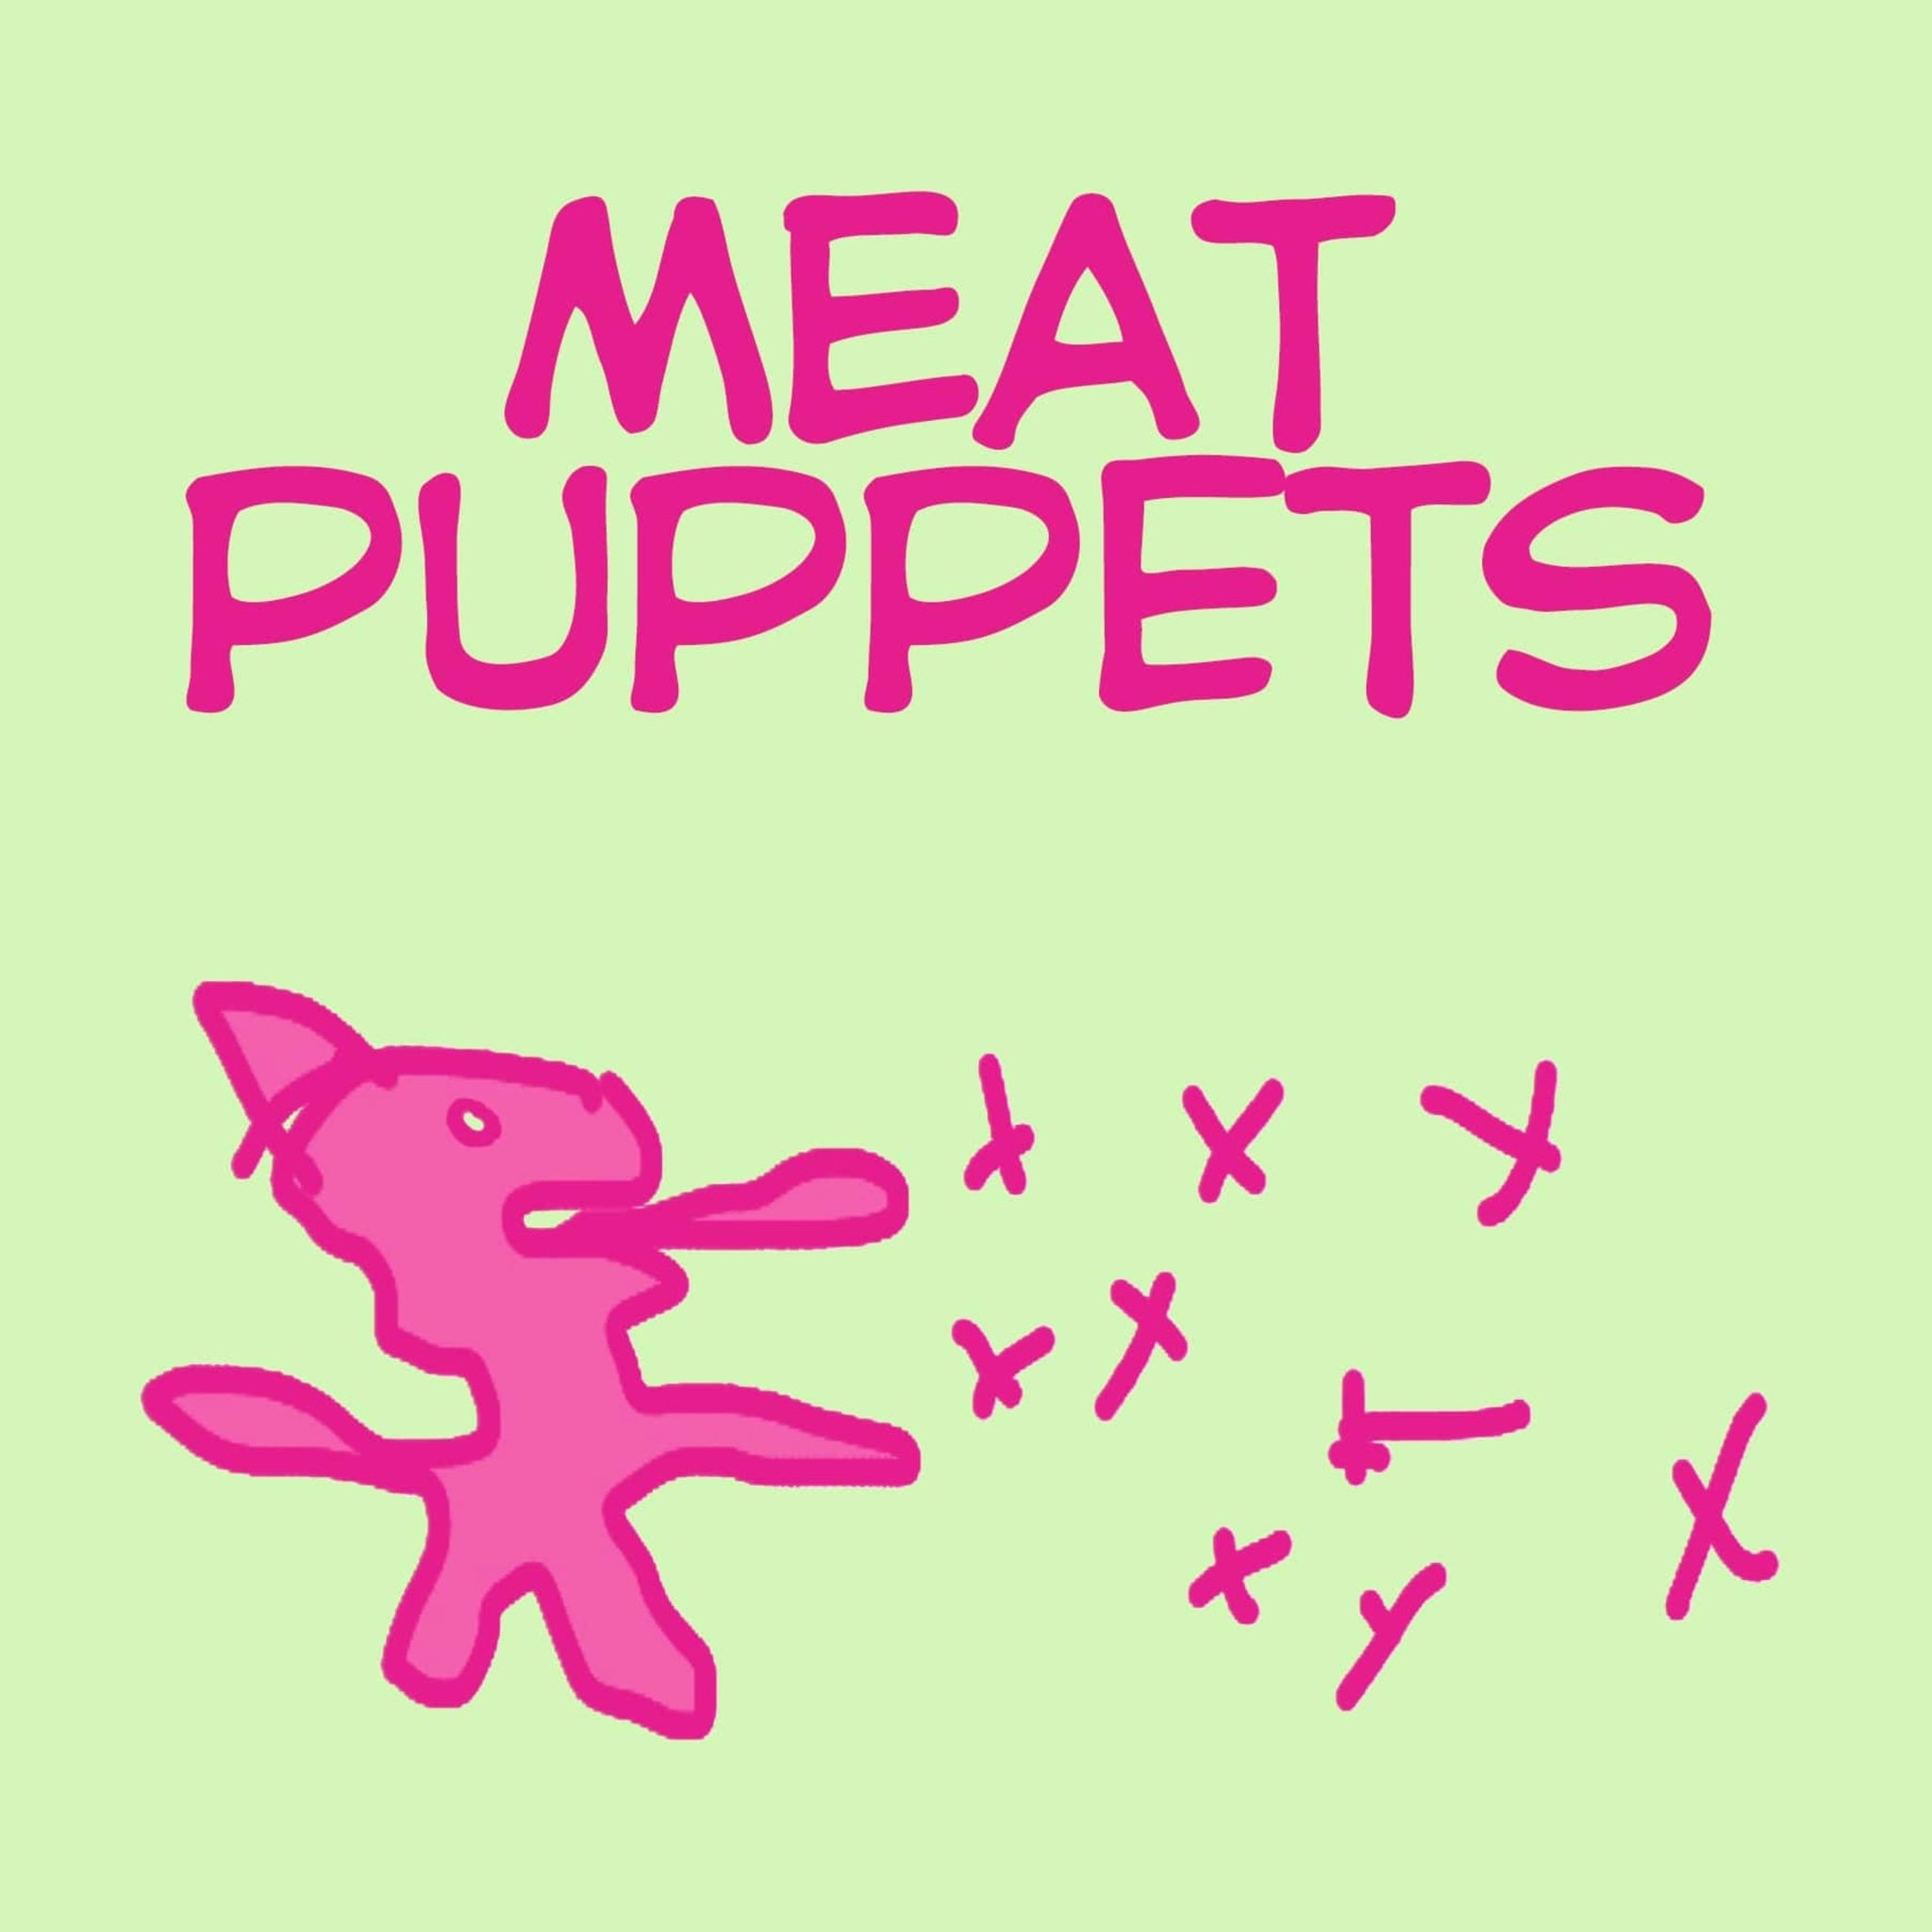 The Meat Puppets - The Meat Puppets